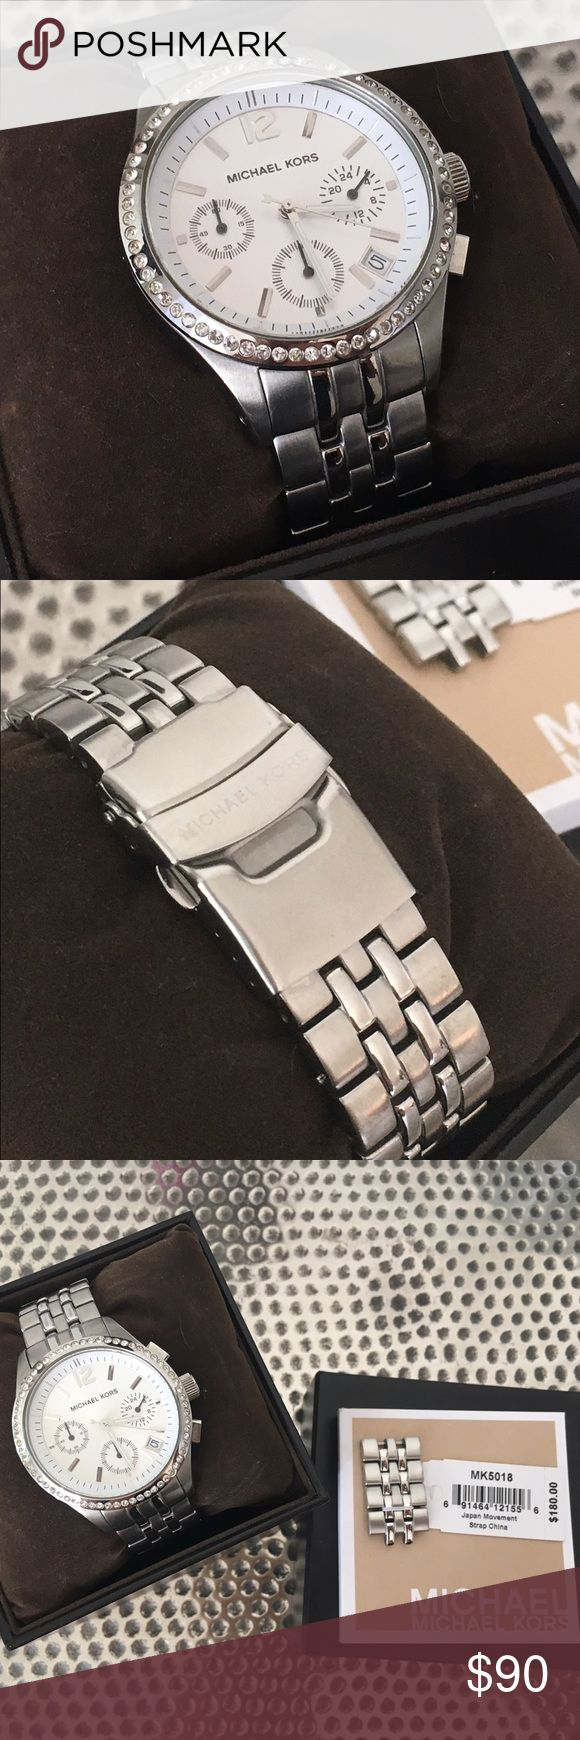 100% AUTHENTIC Michael Kors Watch 100% AUTHENTIC Silver Michael Kors Watch. New with all original packaging. Extra links included. Needs a new battery. Michael Kors Accessories Watches